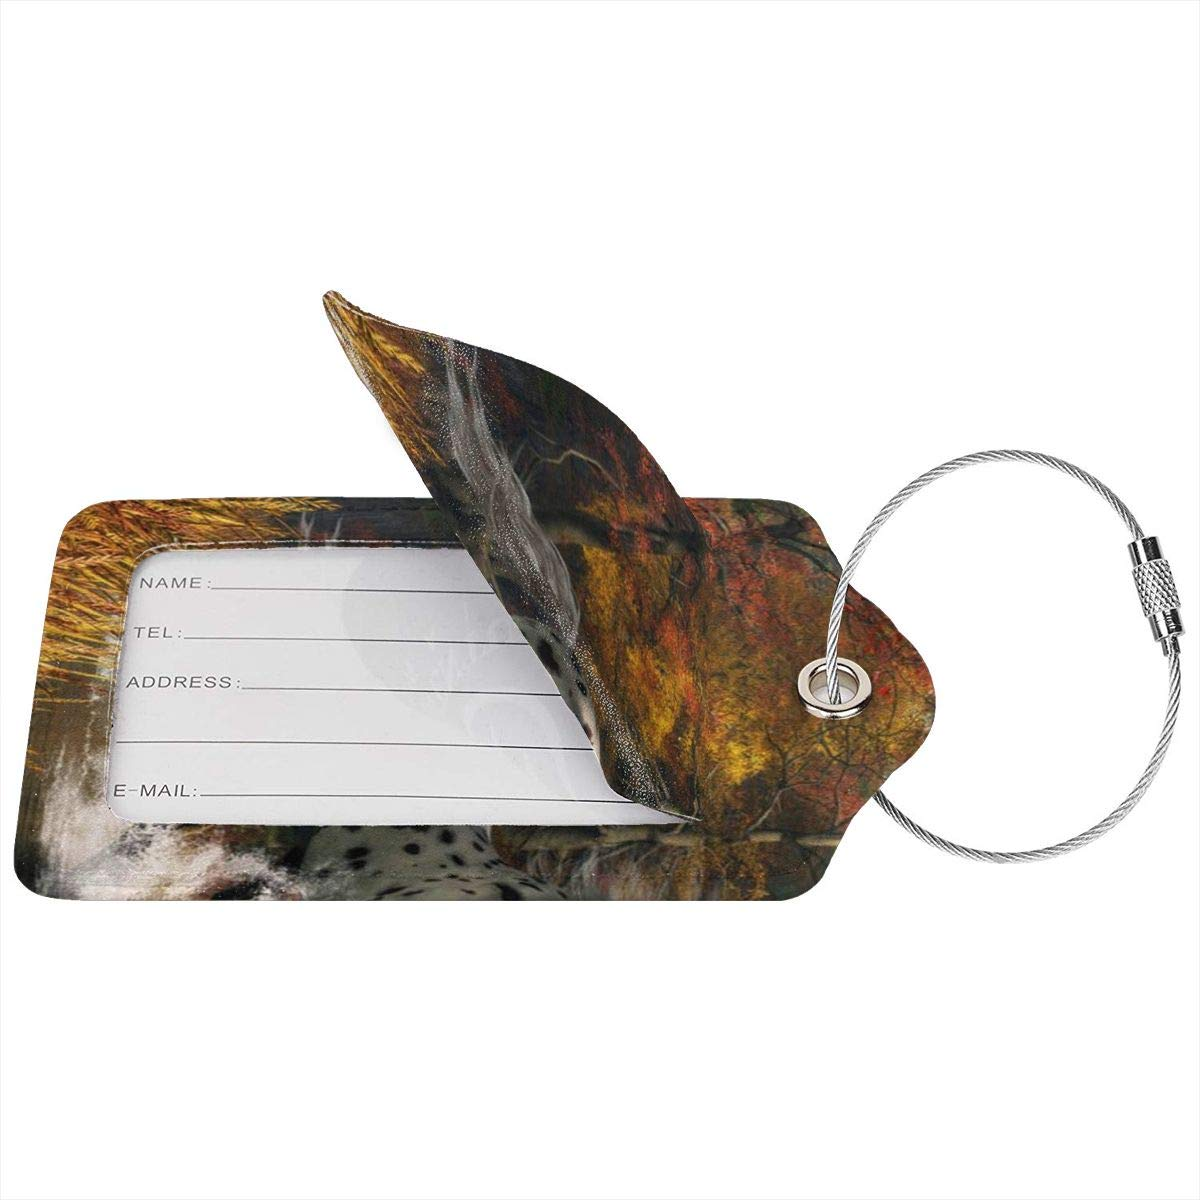 Appaloosa Horse Luggage Tag Label Travel Bag Label With Privacy Cover Luggage Tag Leather Personalized Suitcase Tag Travel Accessories